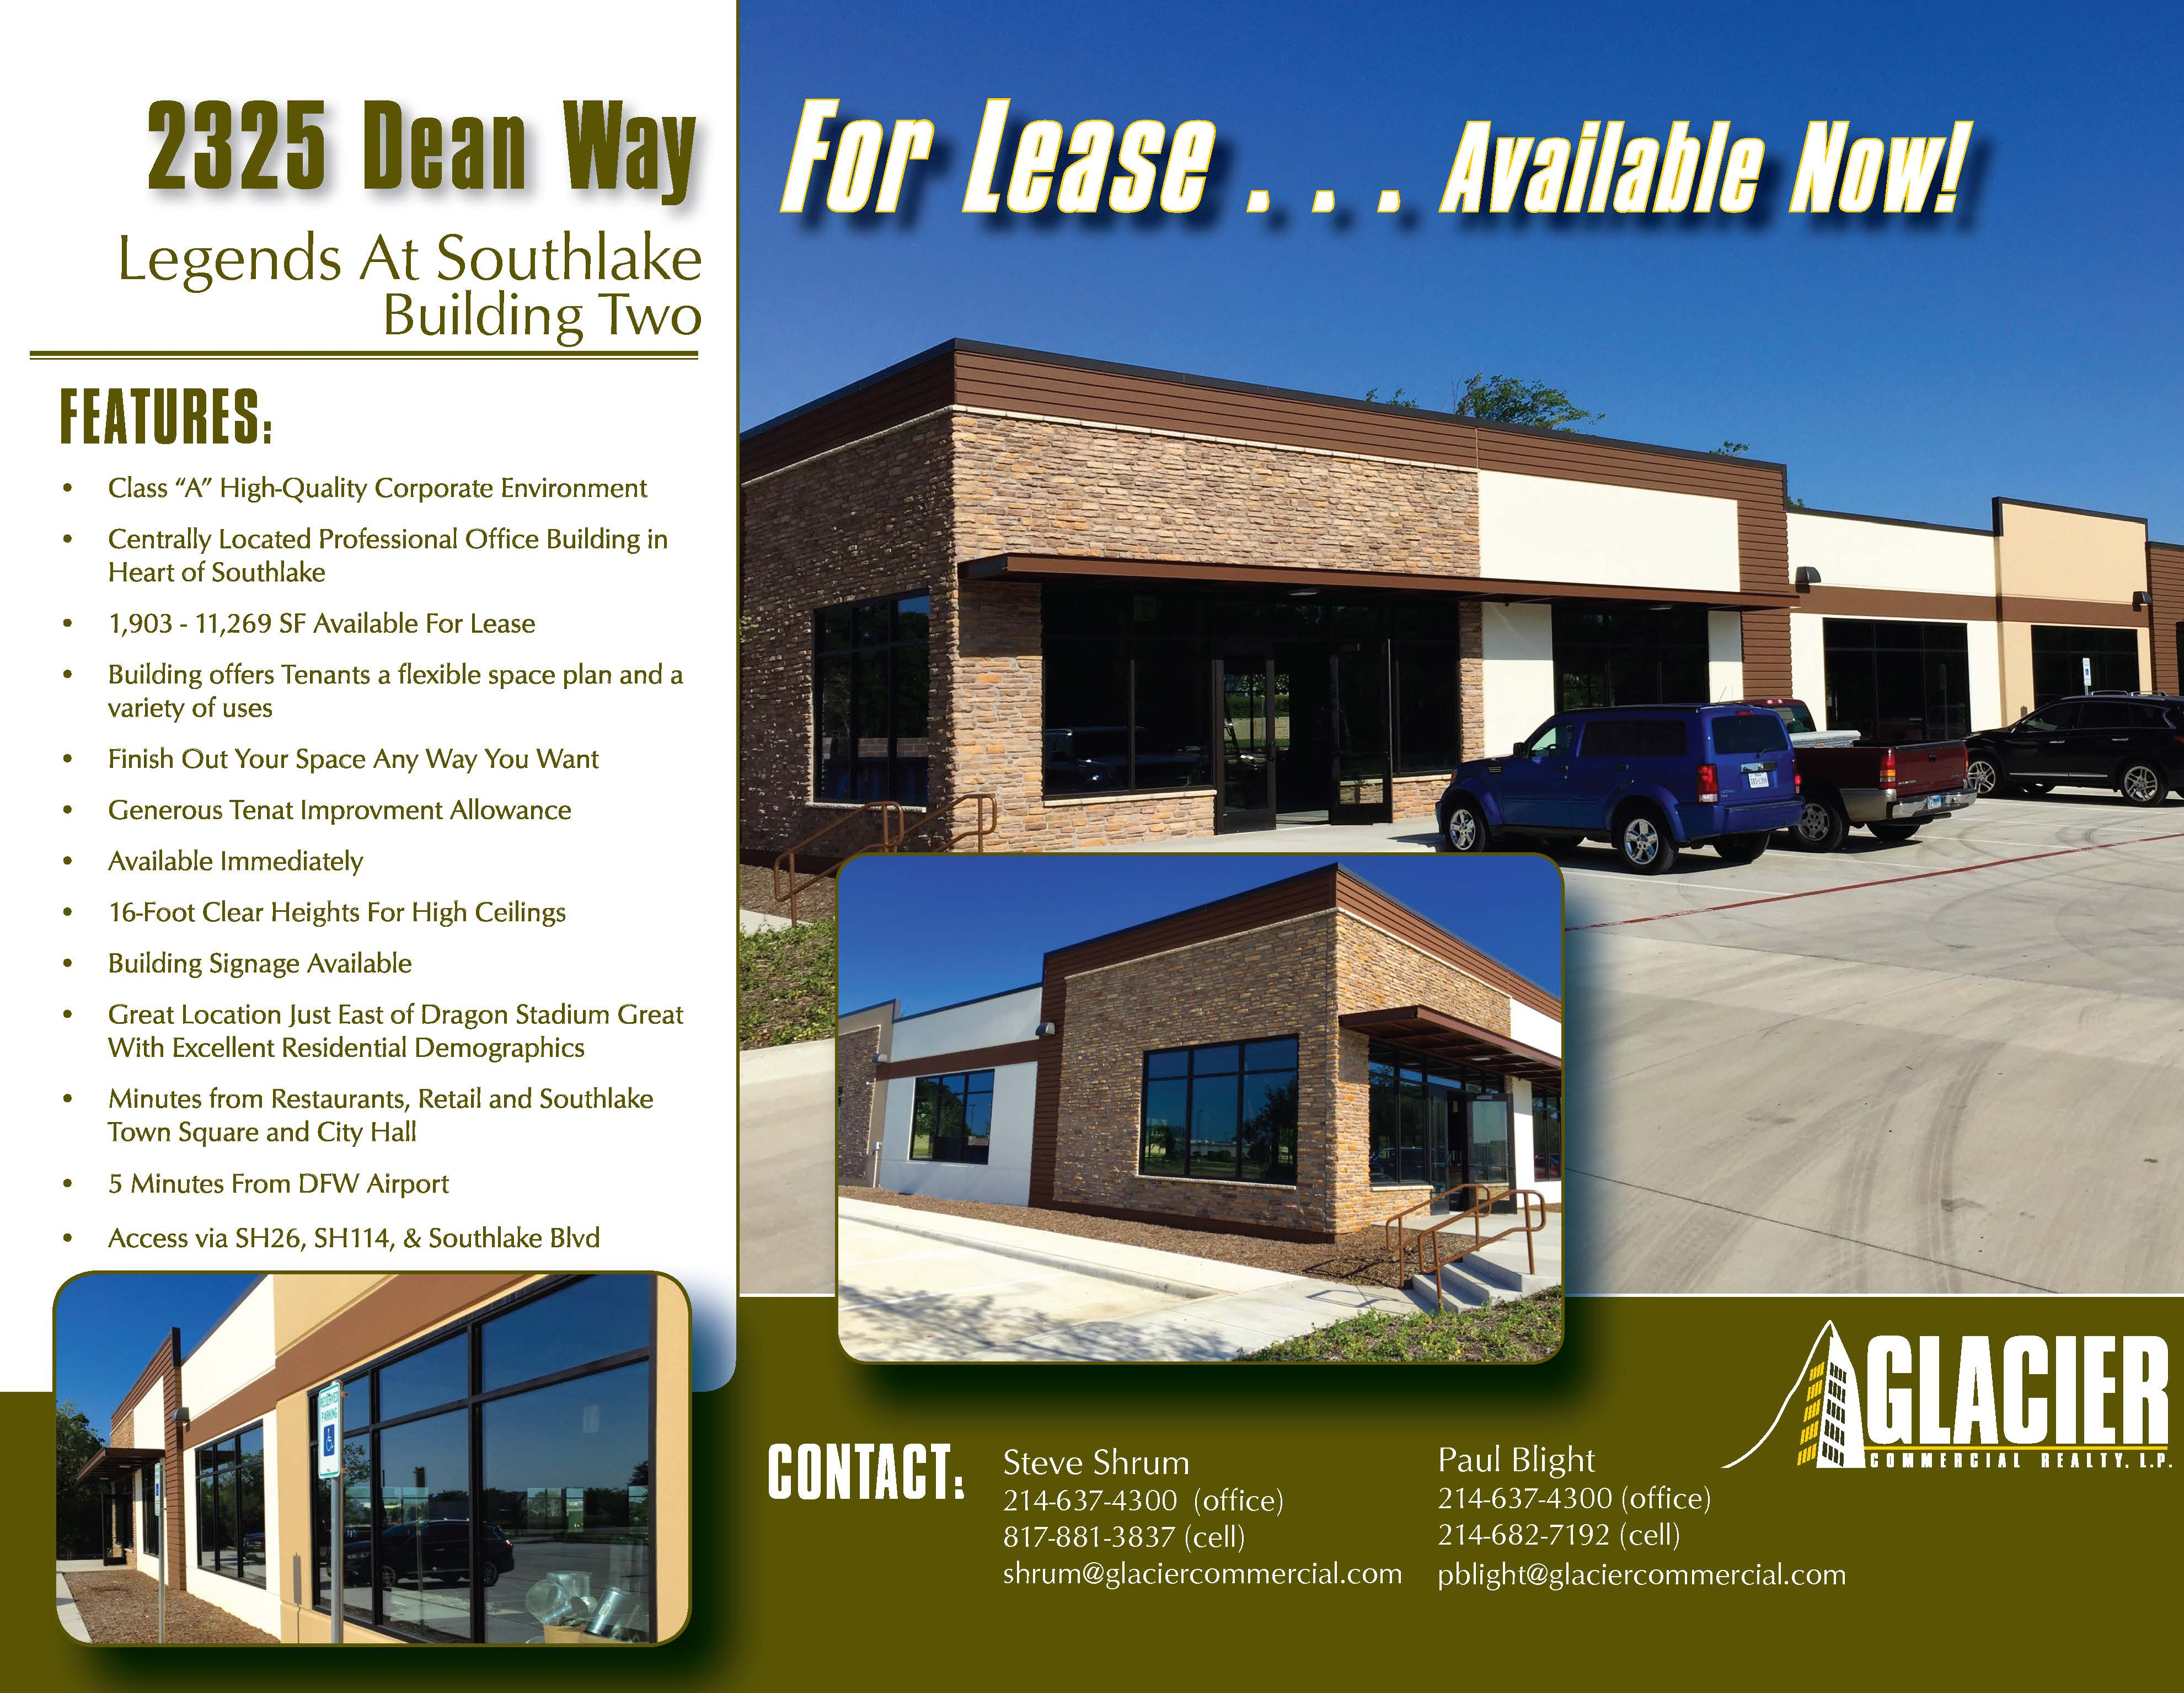 2325_dean_way_legends_at_southlake_for_lease_flyer_page_1